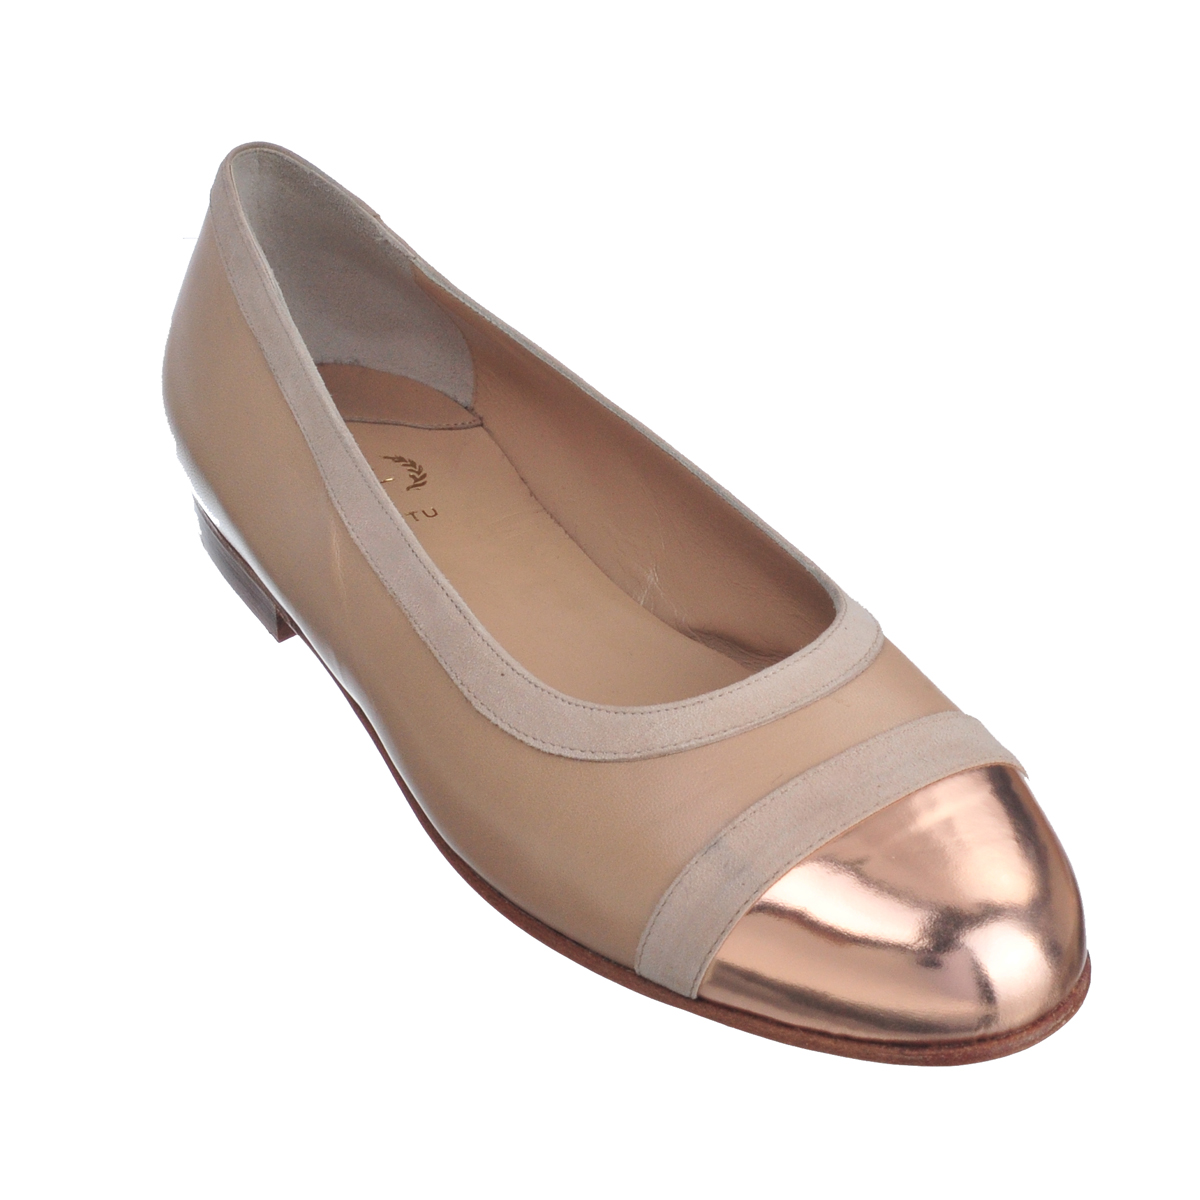 [SHOES / FLAT] DANA  (MIRROR LEATHER / GOLD) (MADE IN ITALY)